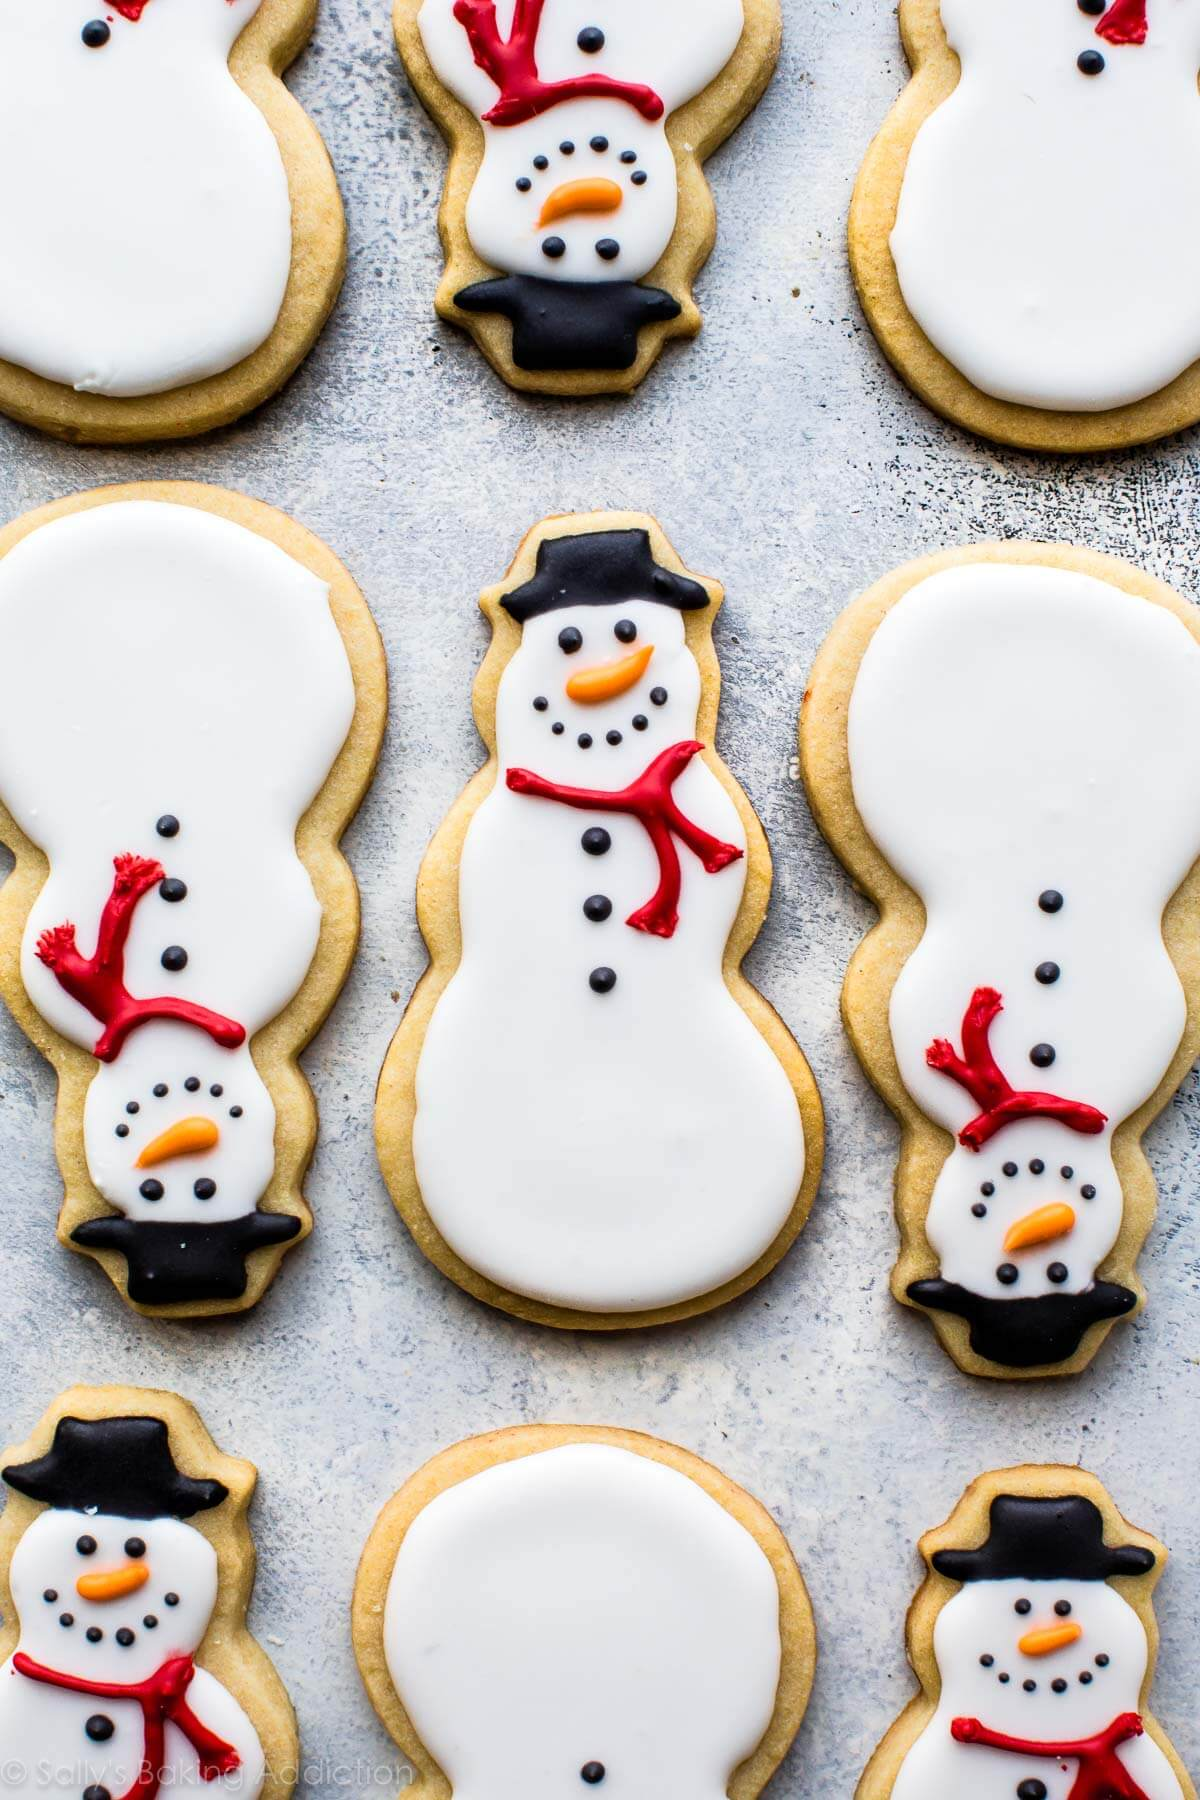 Watch Snowflake Biscuits Recipe video